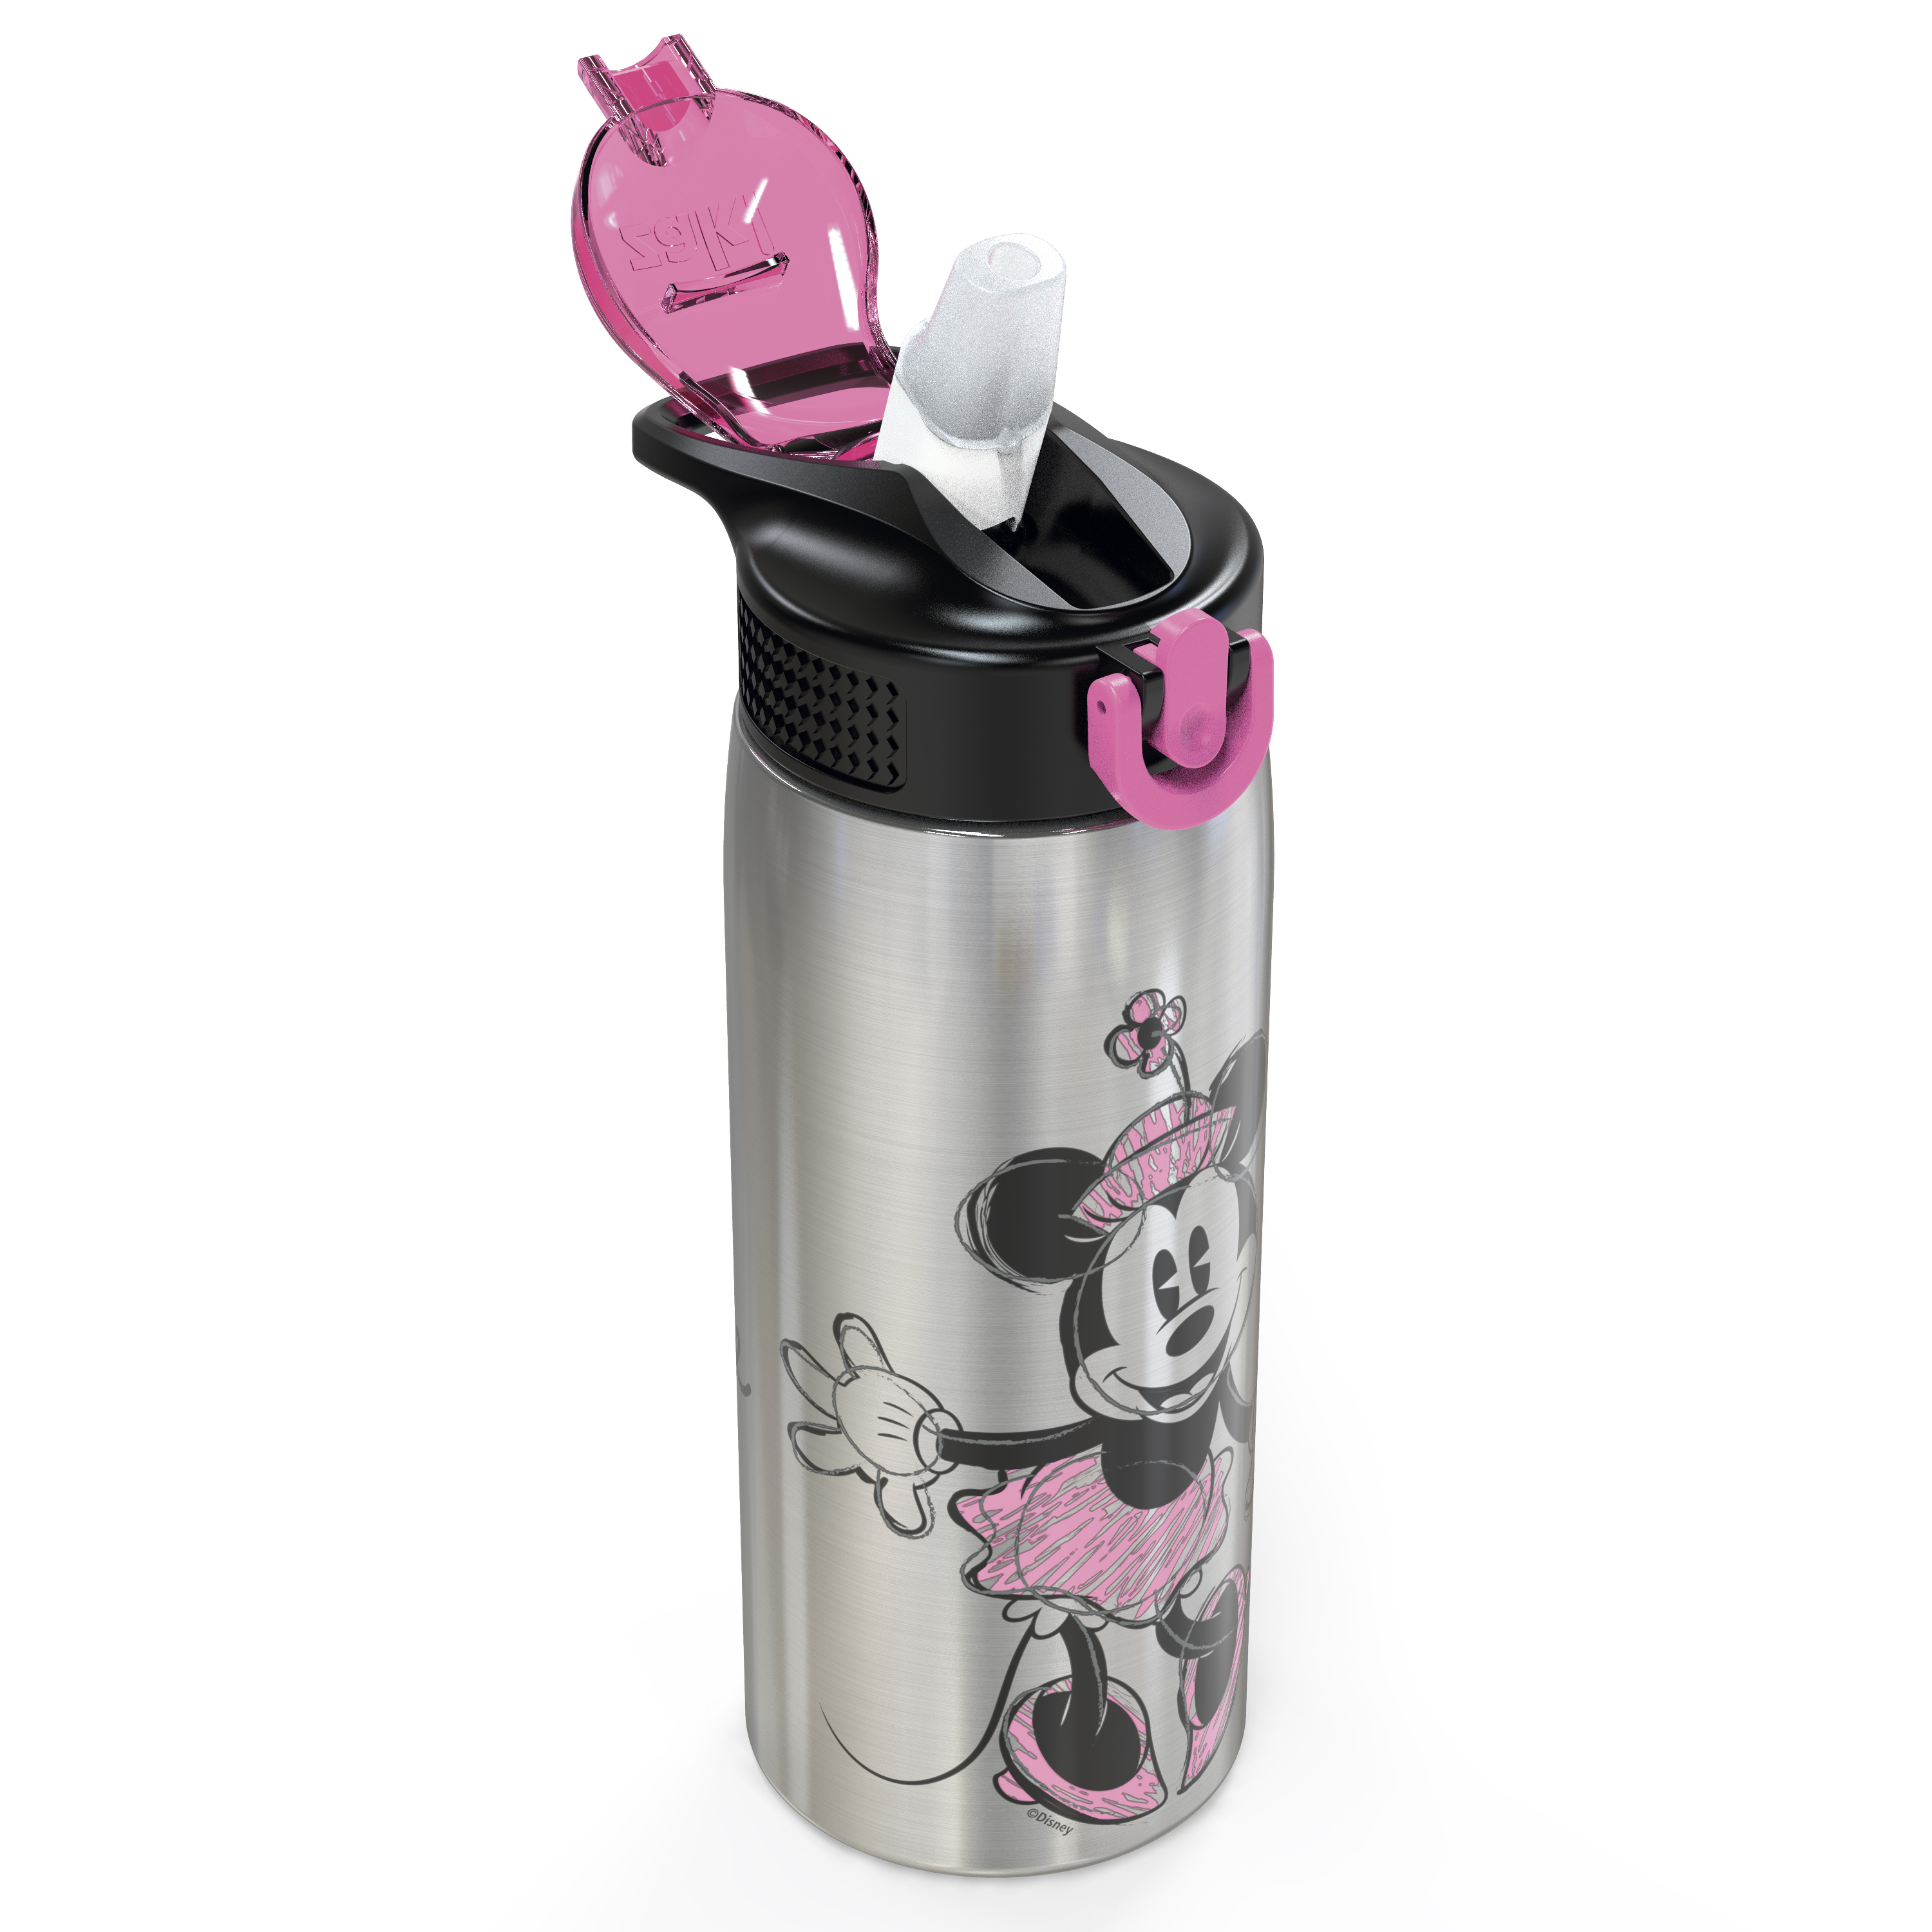 Disney 27 ounce Water Bottle, Minnie Mouse slideshow image 4